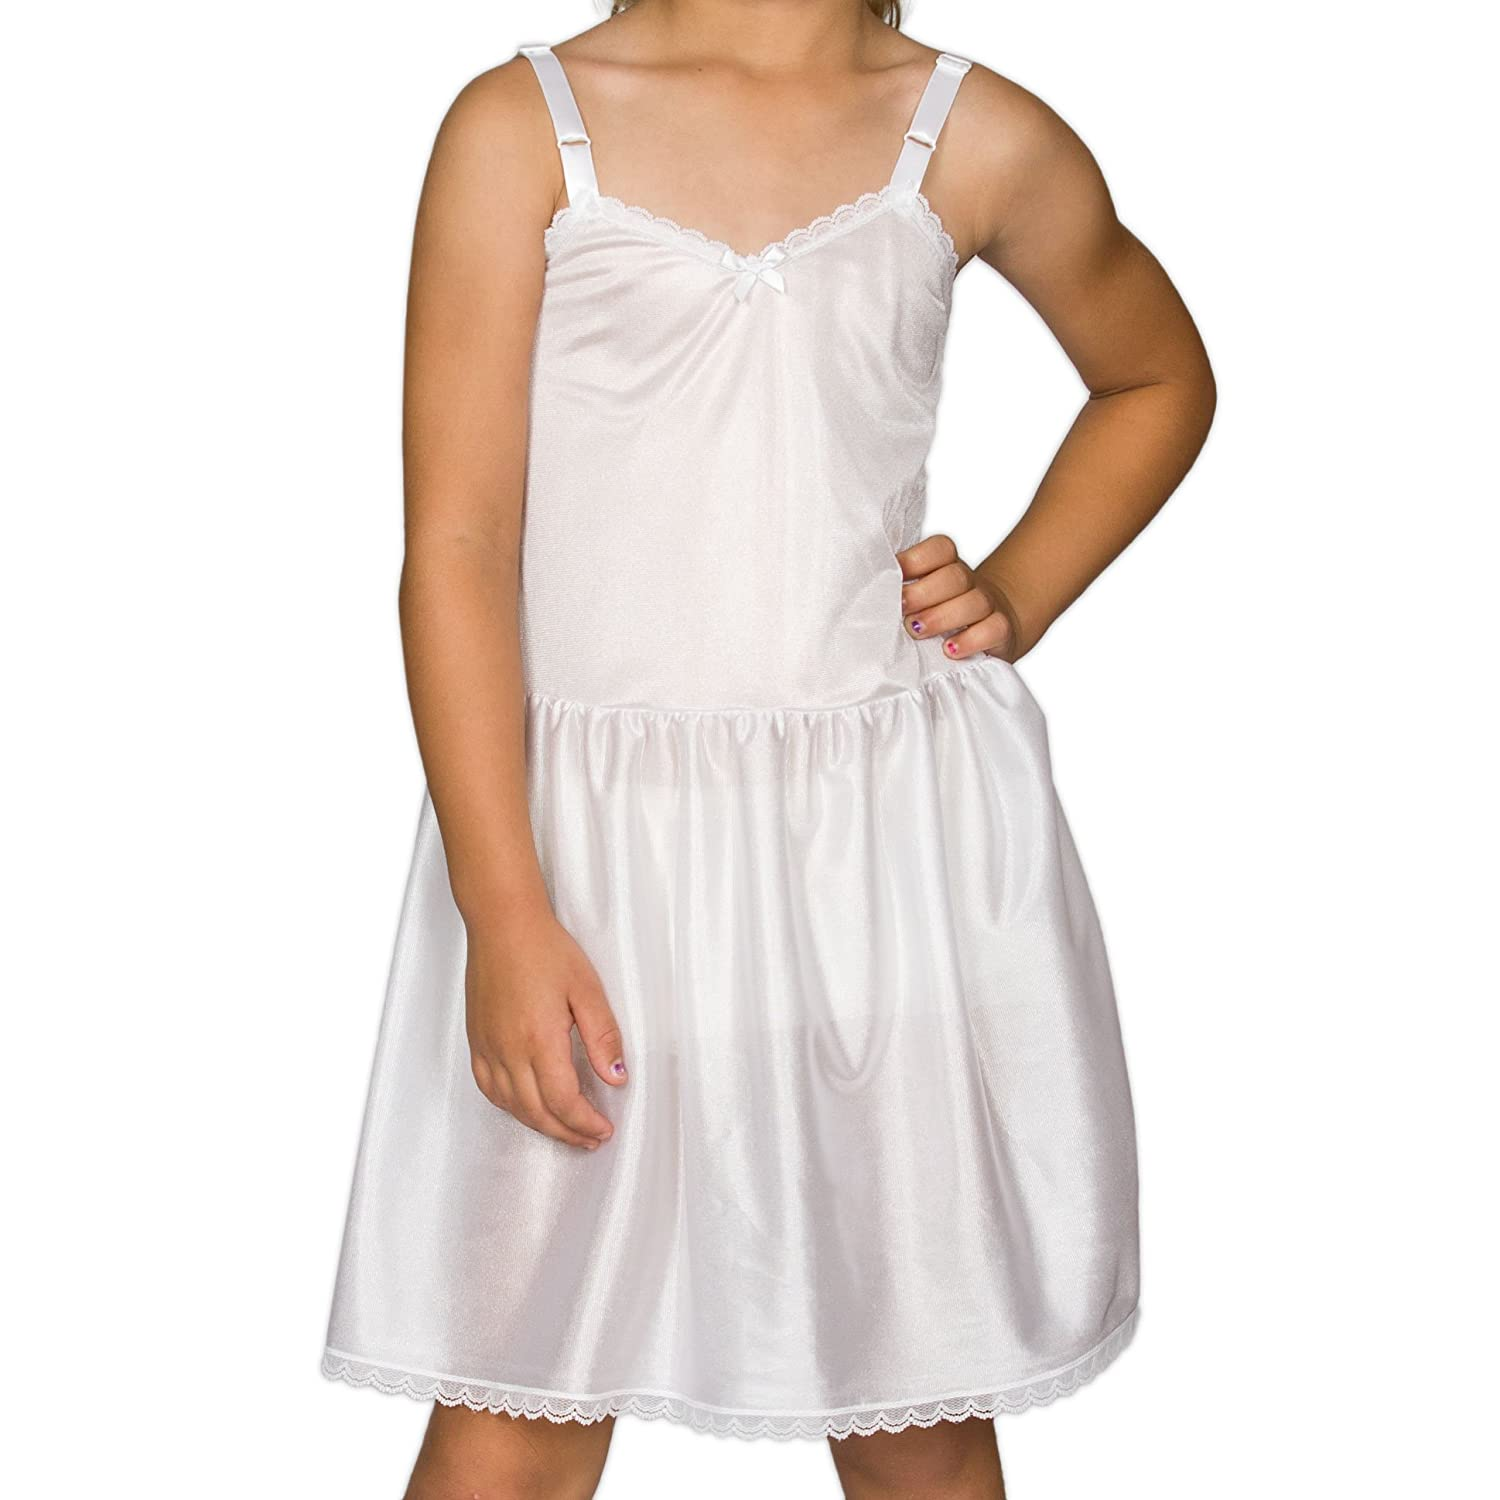 I.C. Collections Big Girls White Adjustable Nylon Slip, 8 New ICM 000473-WHC